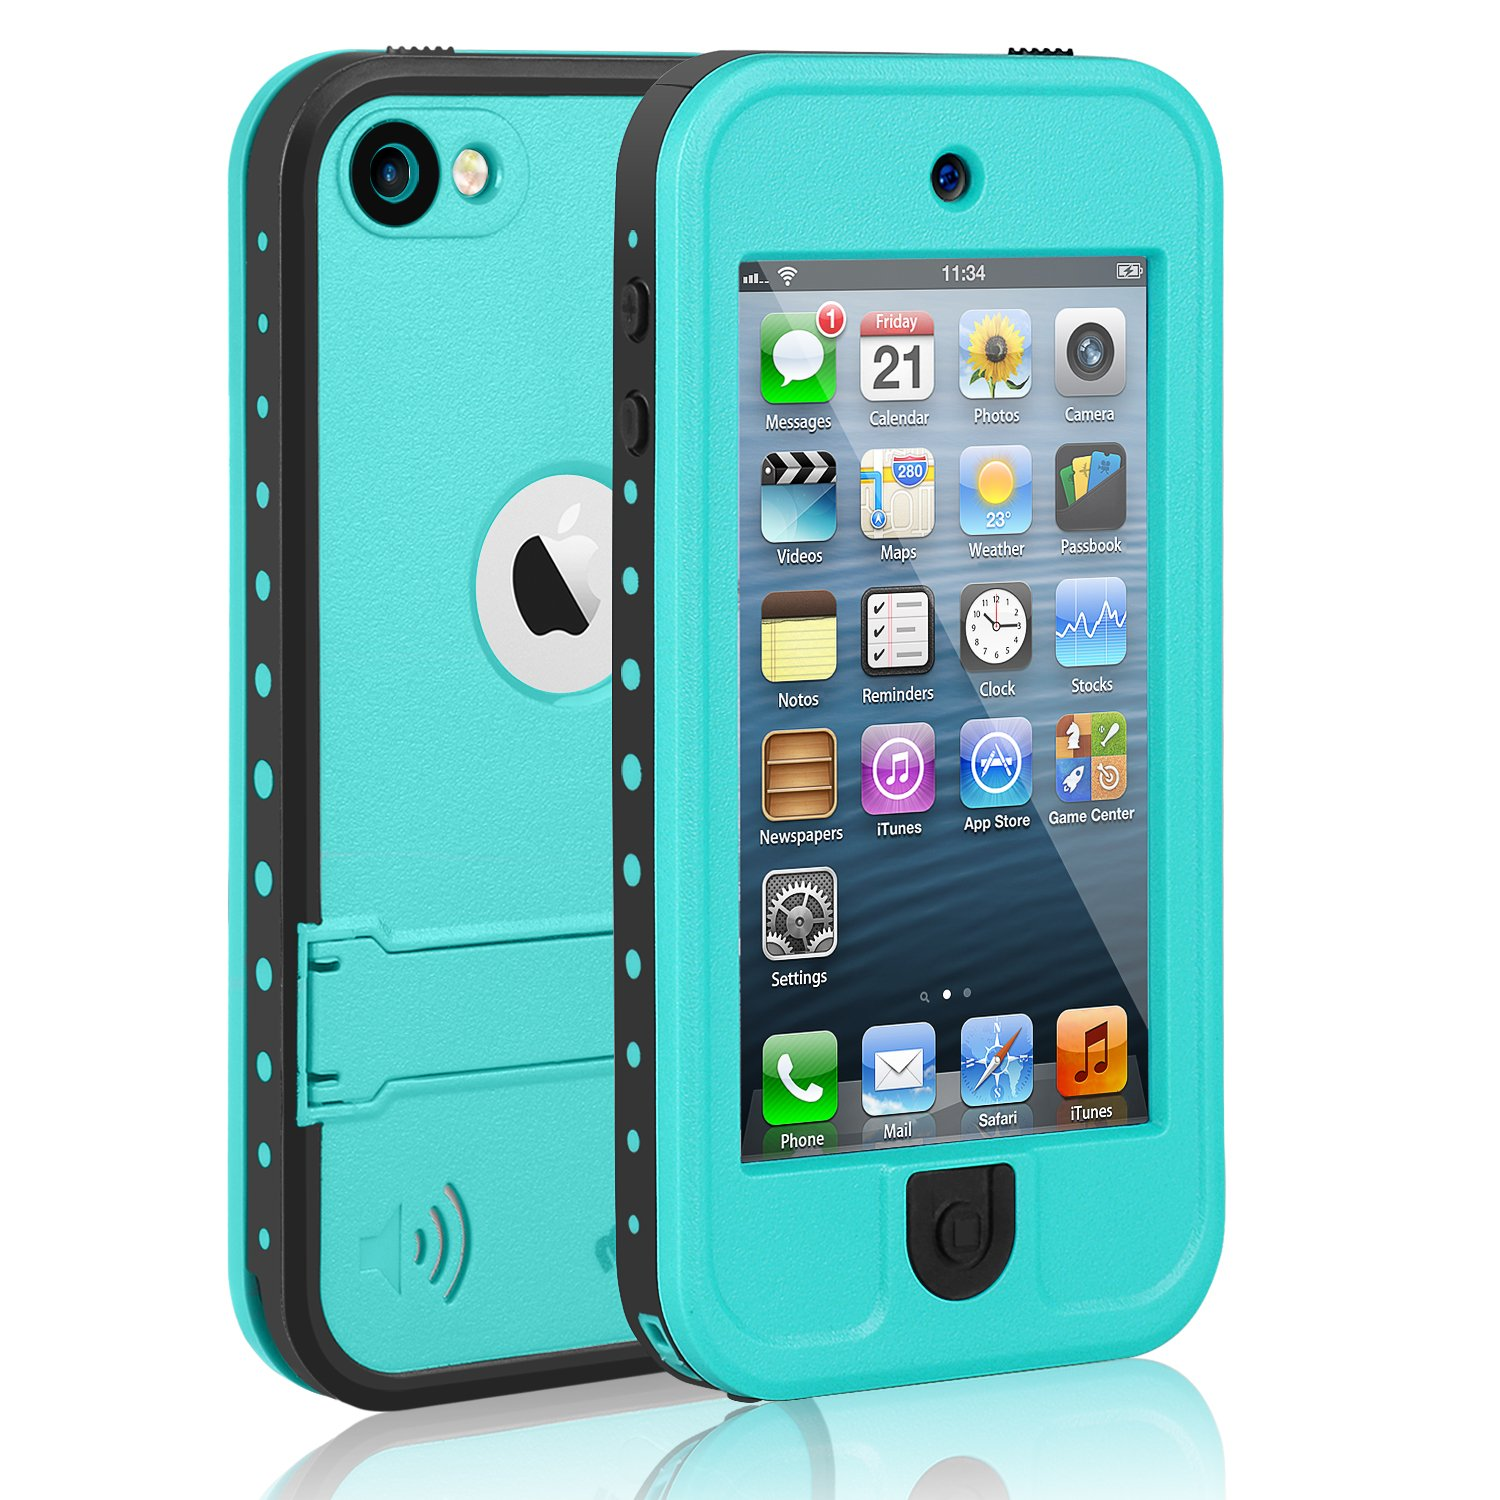 iPod 5 iPod 6 Waterproof Case, Merit Waterproof Shockproof Dirtproof Snowproof Case Cover with Kickstand for Apple iPod Touch 5th/6th Generation (Blue) Meritcase 4330387125